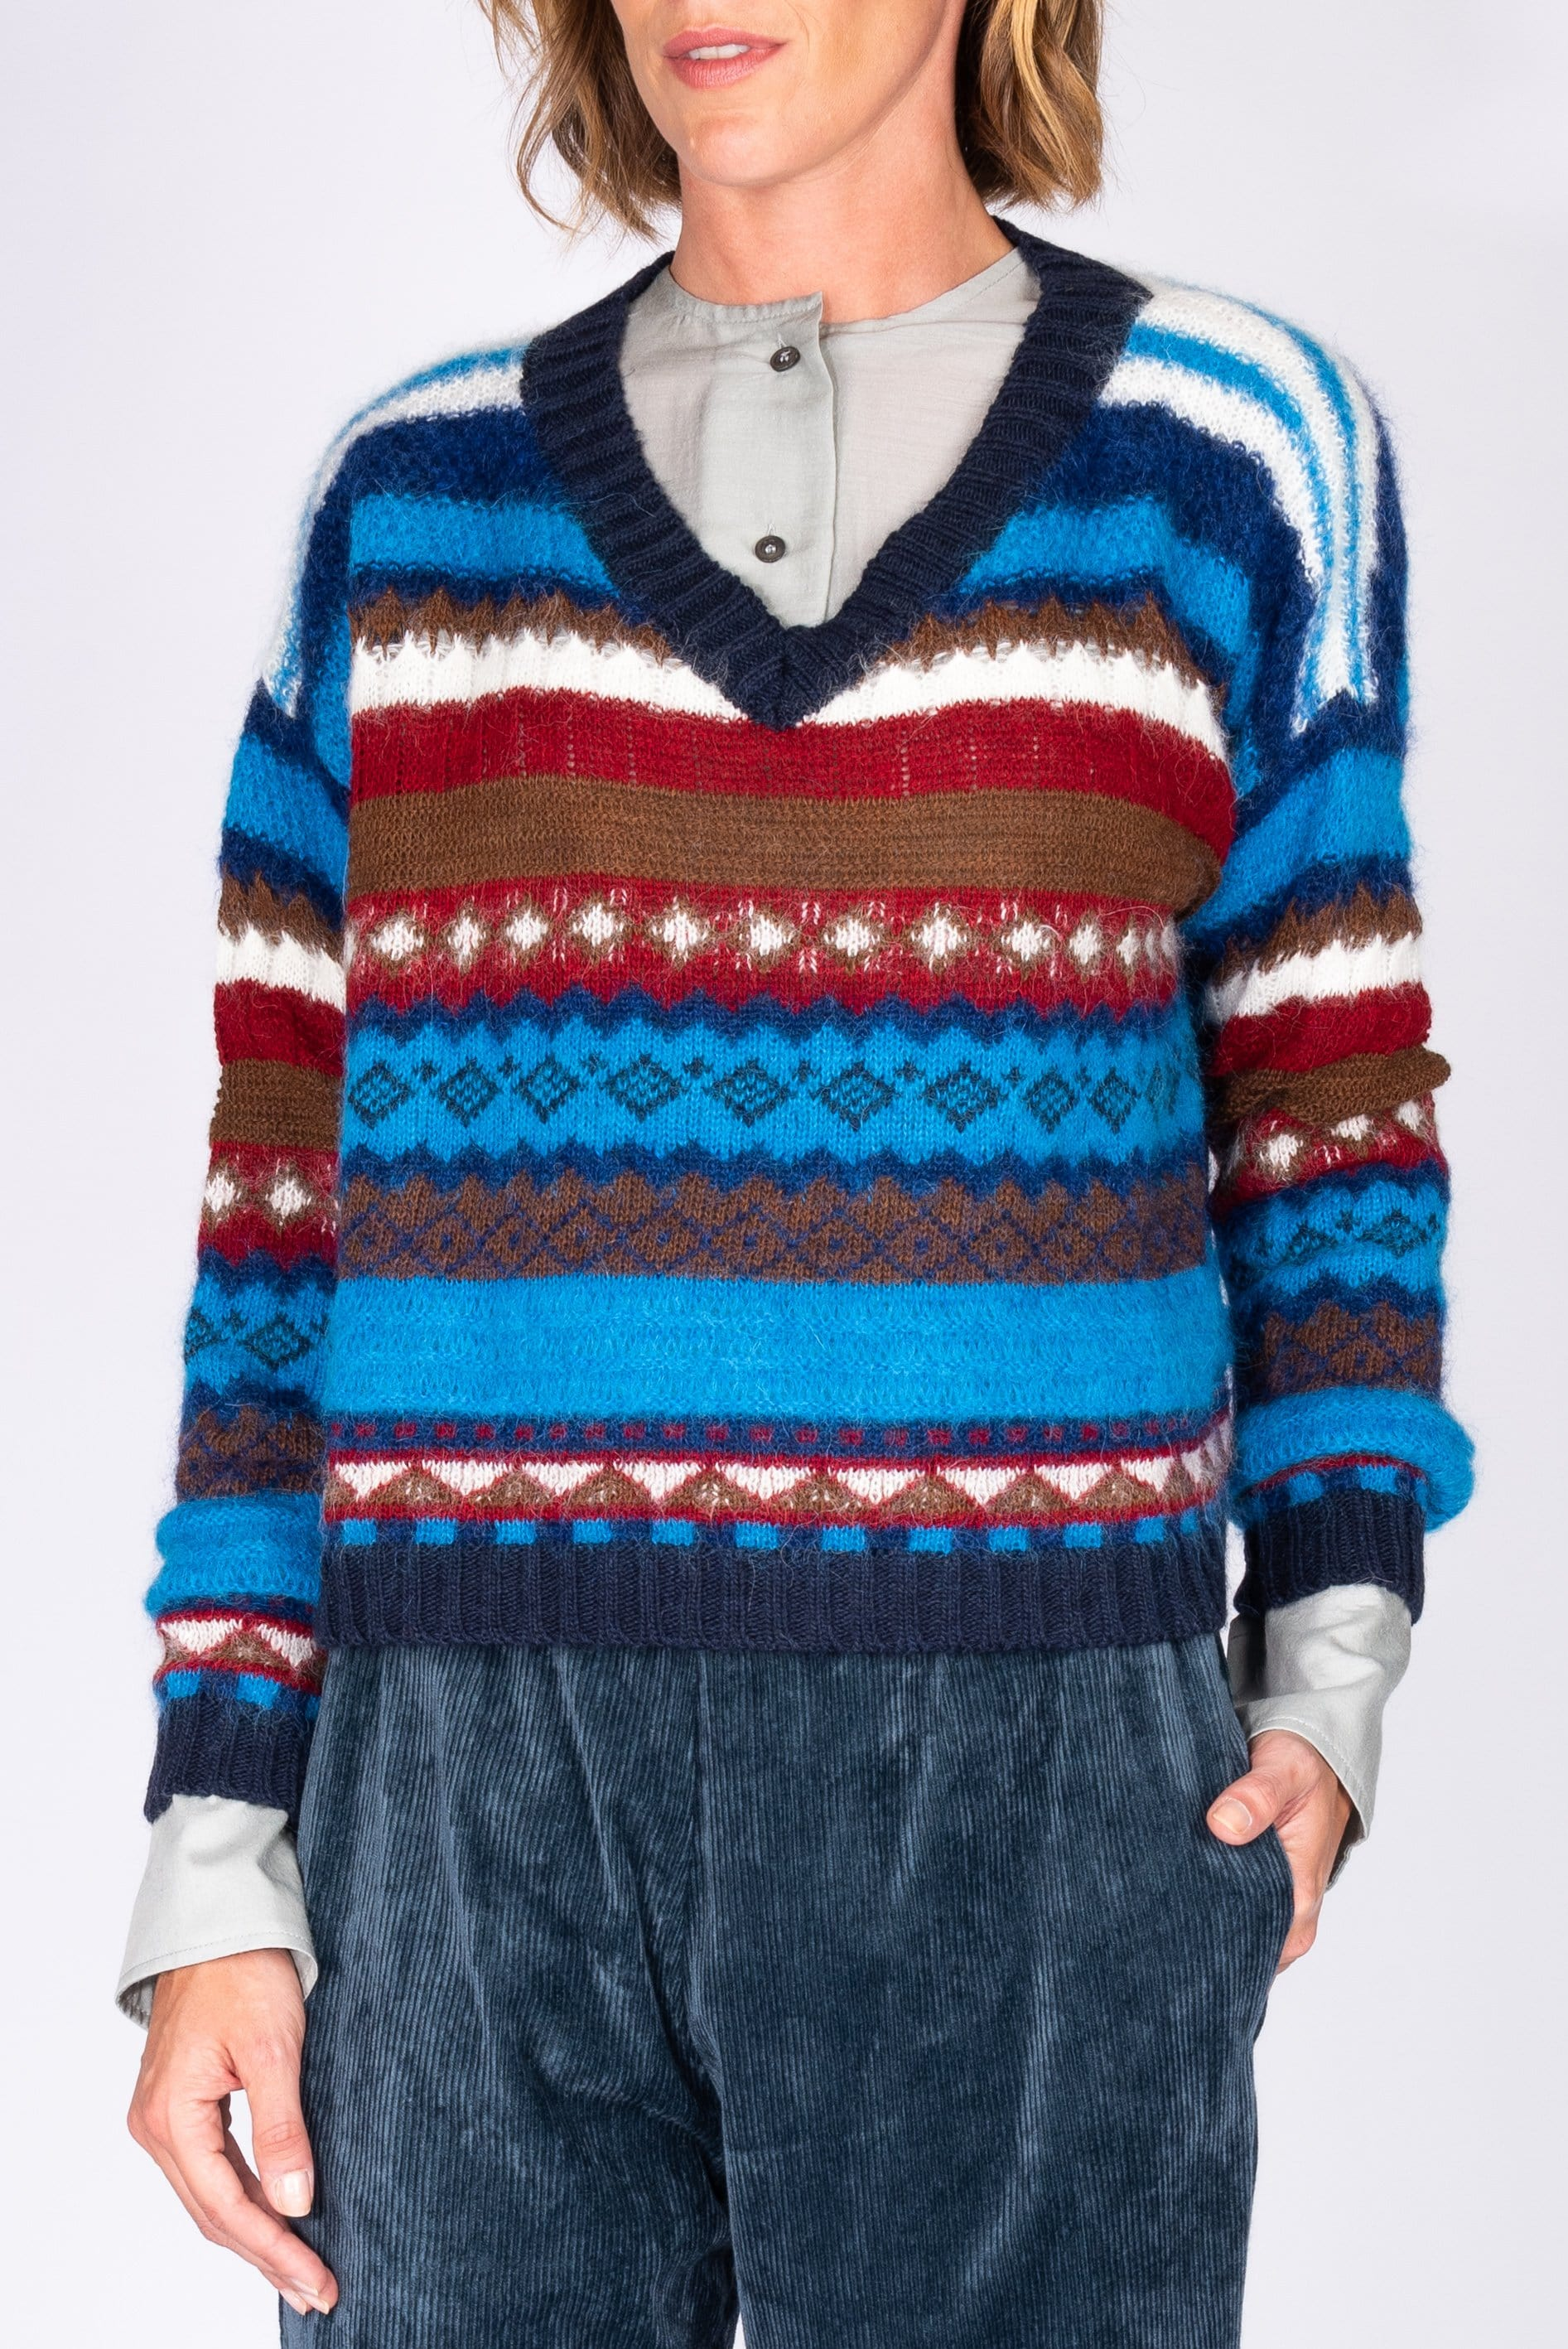 Multicolored striped sweater from Phisique du Role